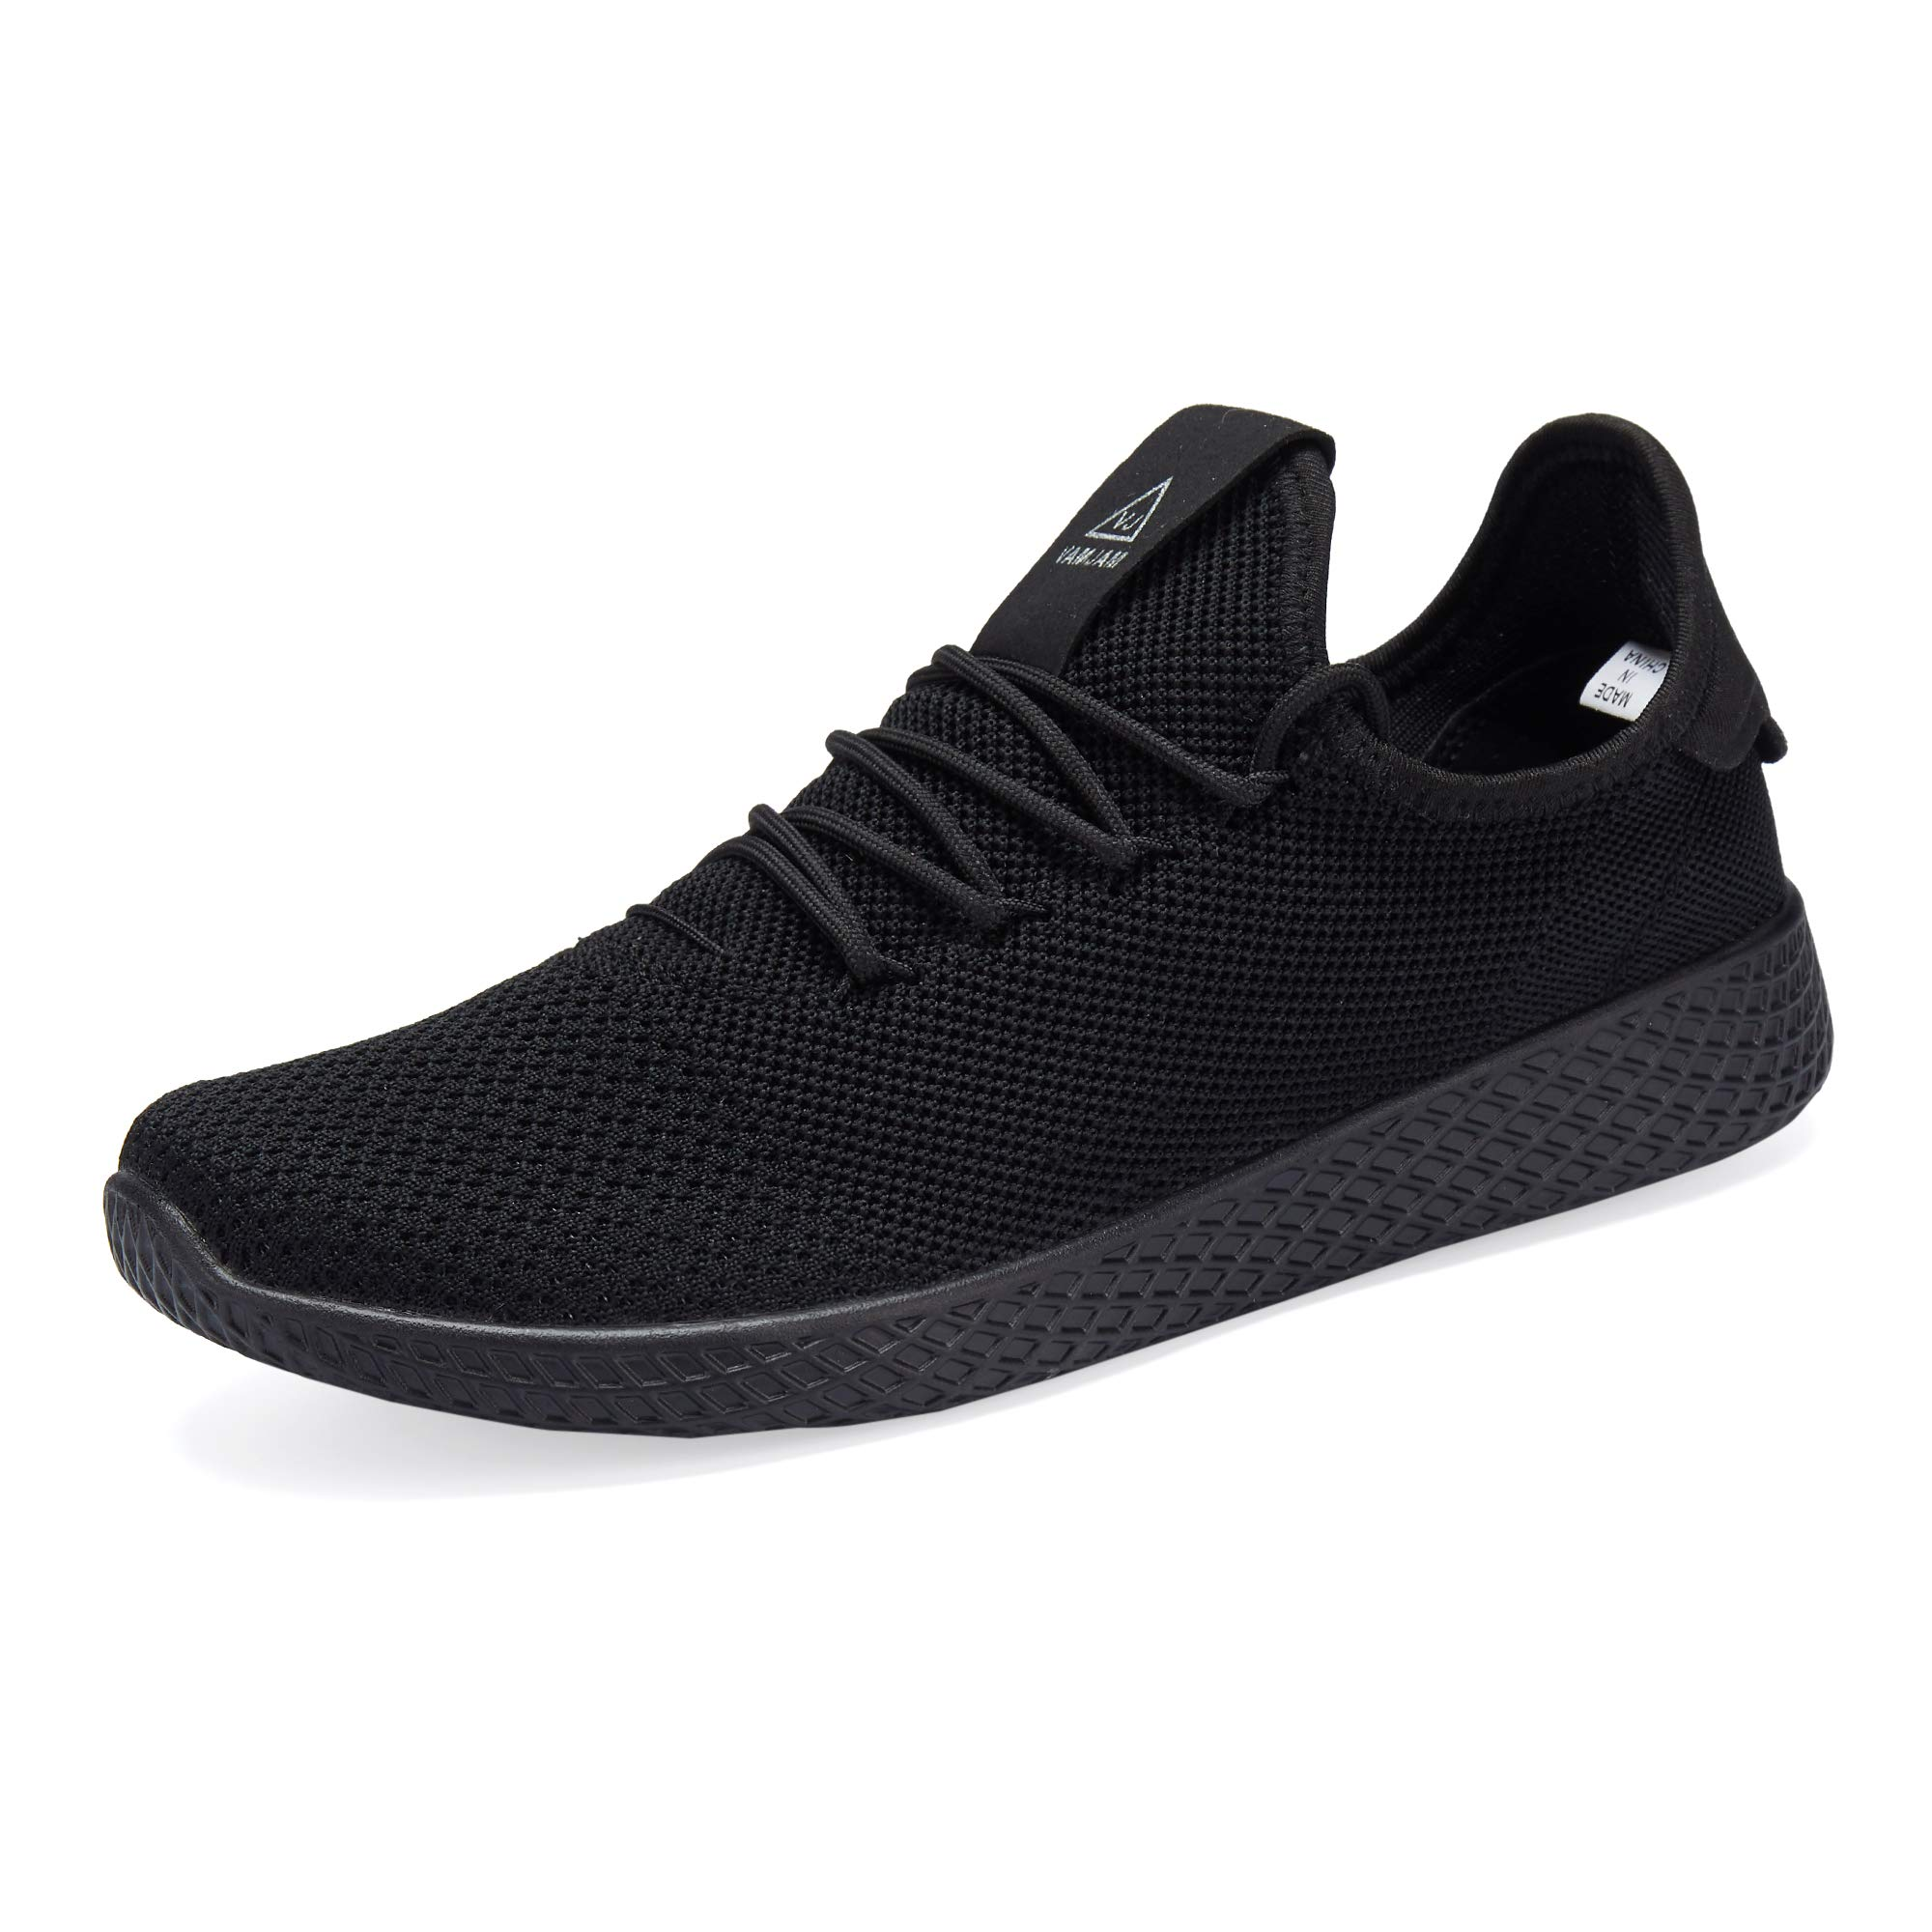 ba1131b67e604 A-PIE Men s Running Athletic Shoes Breathable Lightweight Fashion Sneakers  Casual Walking Shoes product image